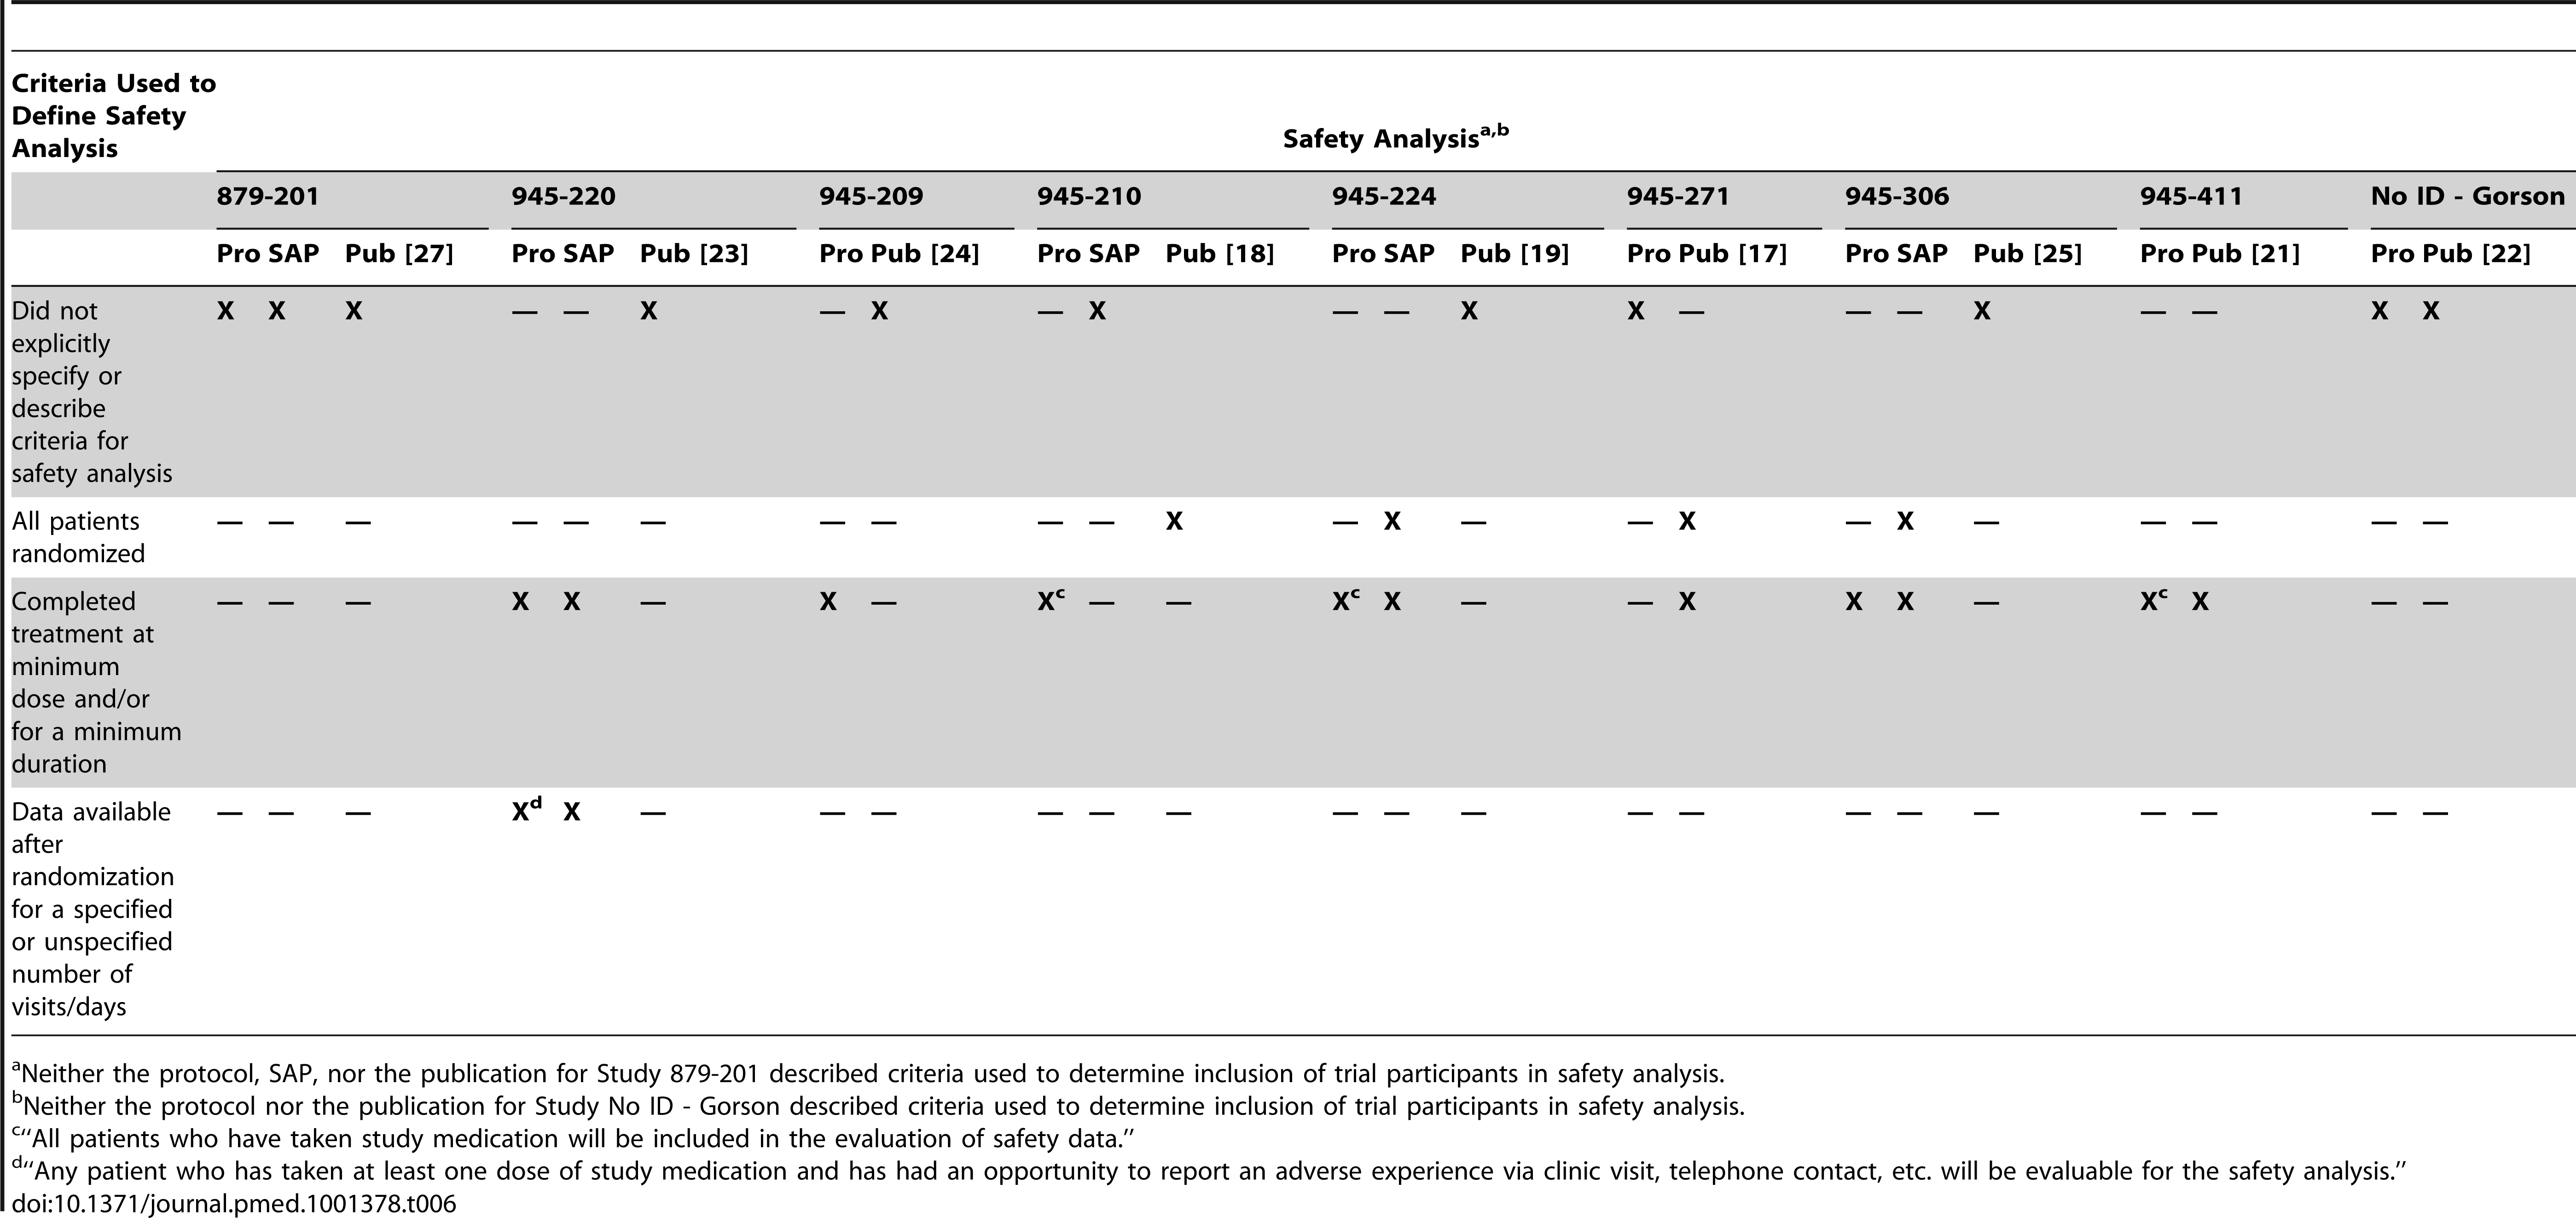 Comparison of protocol (Pro), SAPs, and publications (Pub) for description of criteria used to determine inclusion of trial participants in safety analysis.